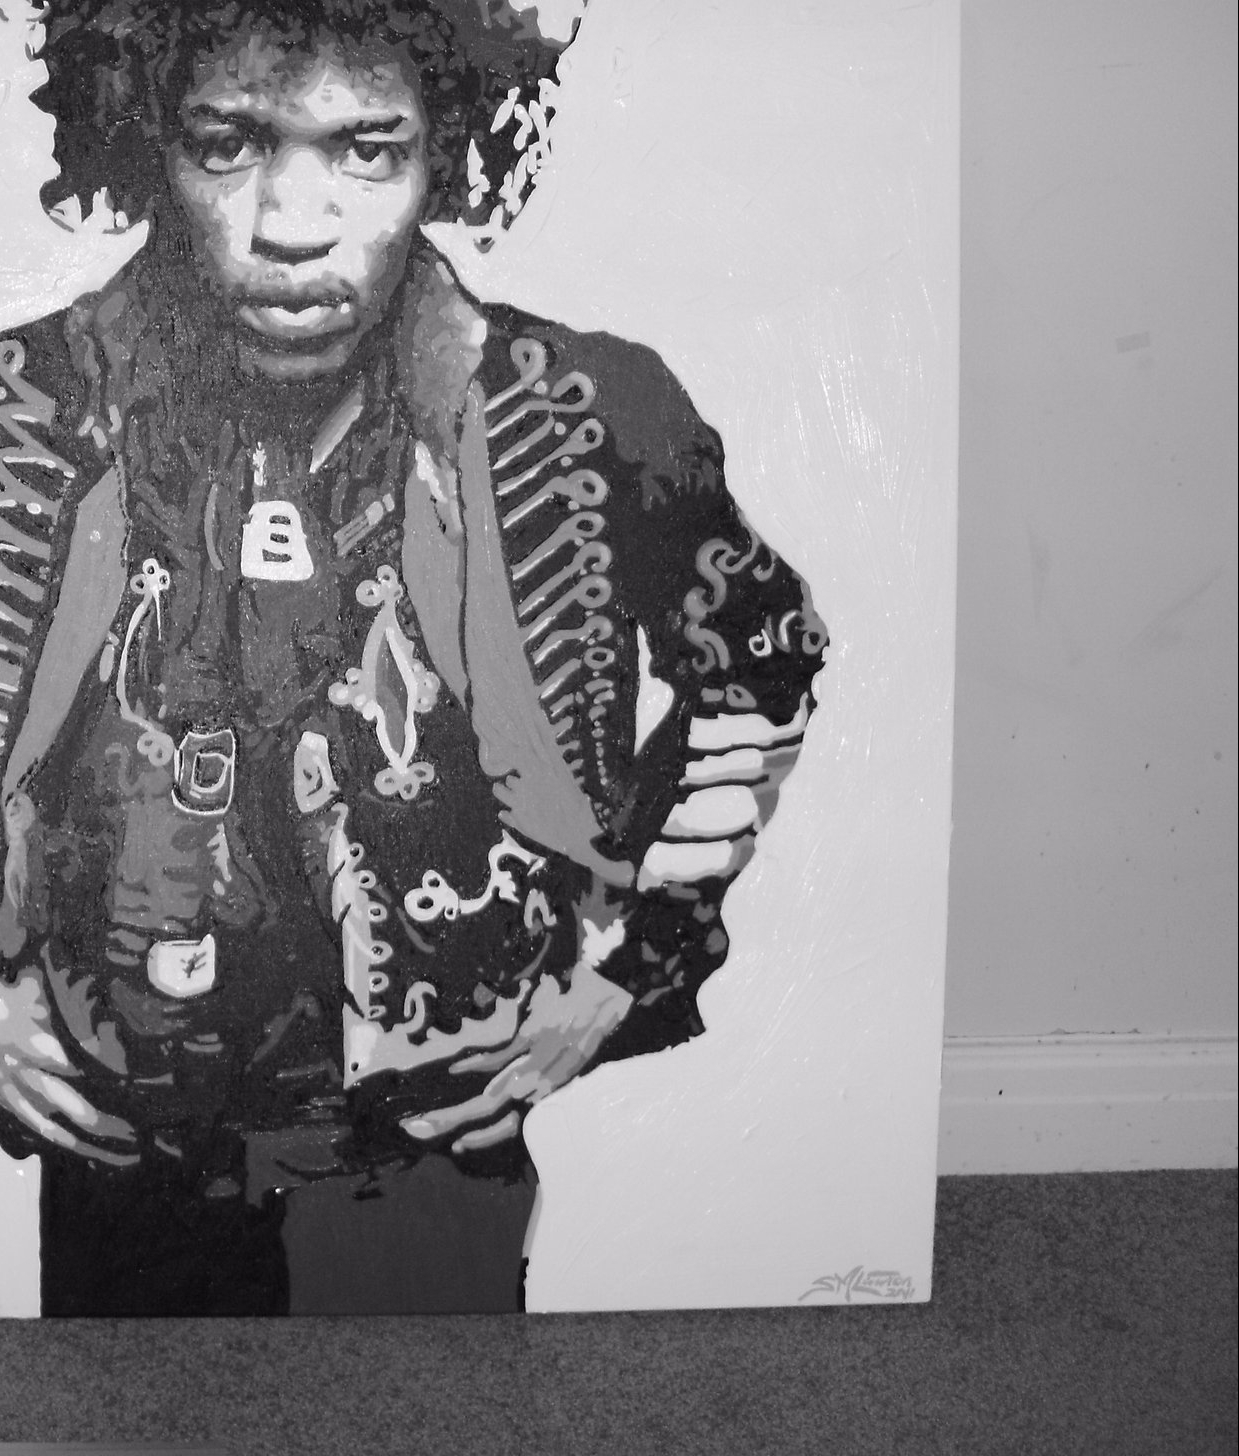 Hendrix by imagery